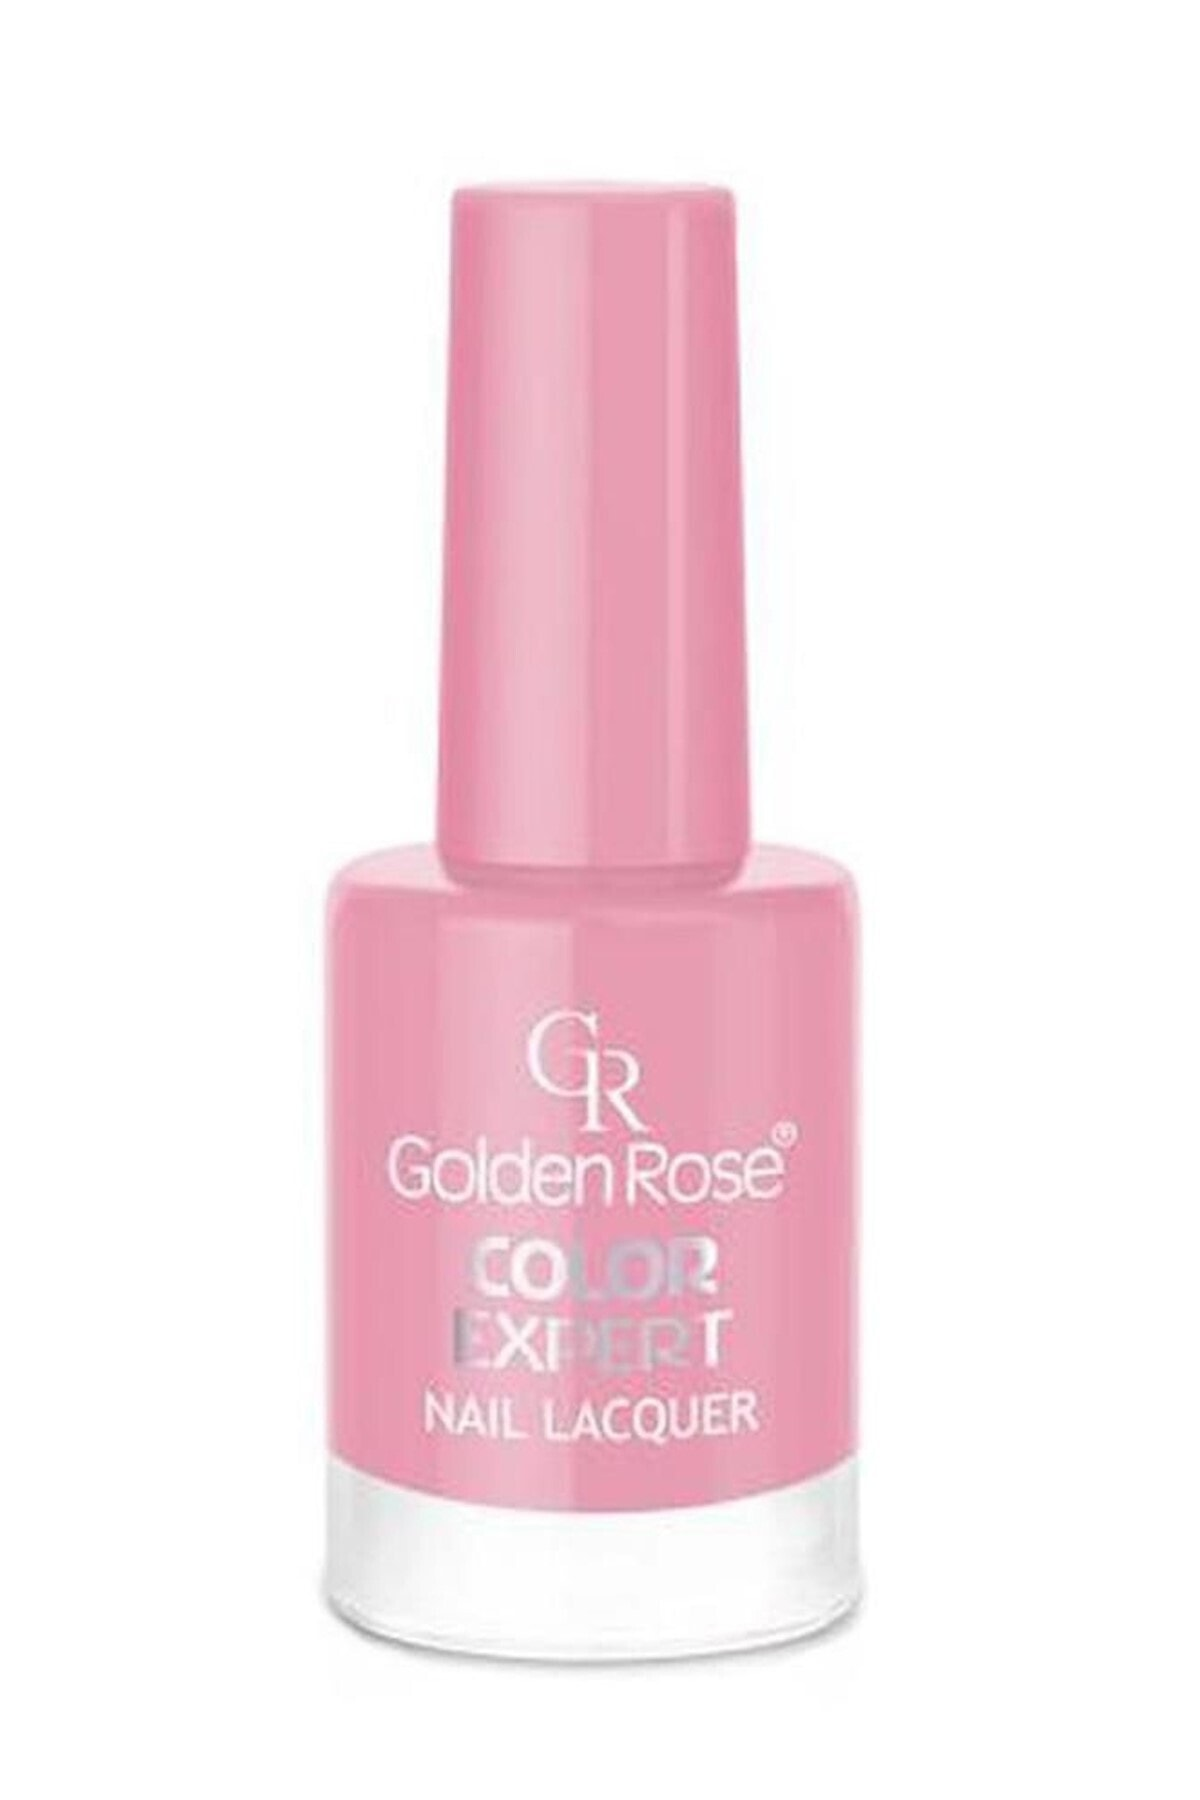 Golden Rose Oje - Color Expert Nail Lacquer No: 45 8691190703455 1